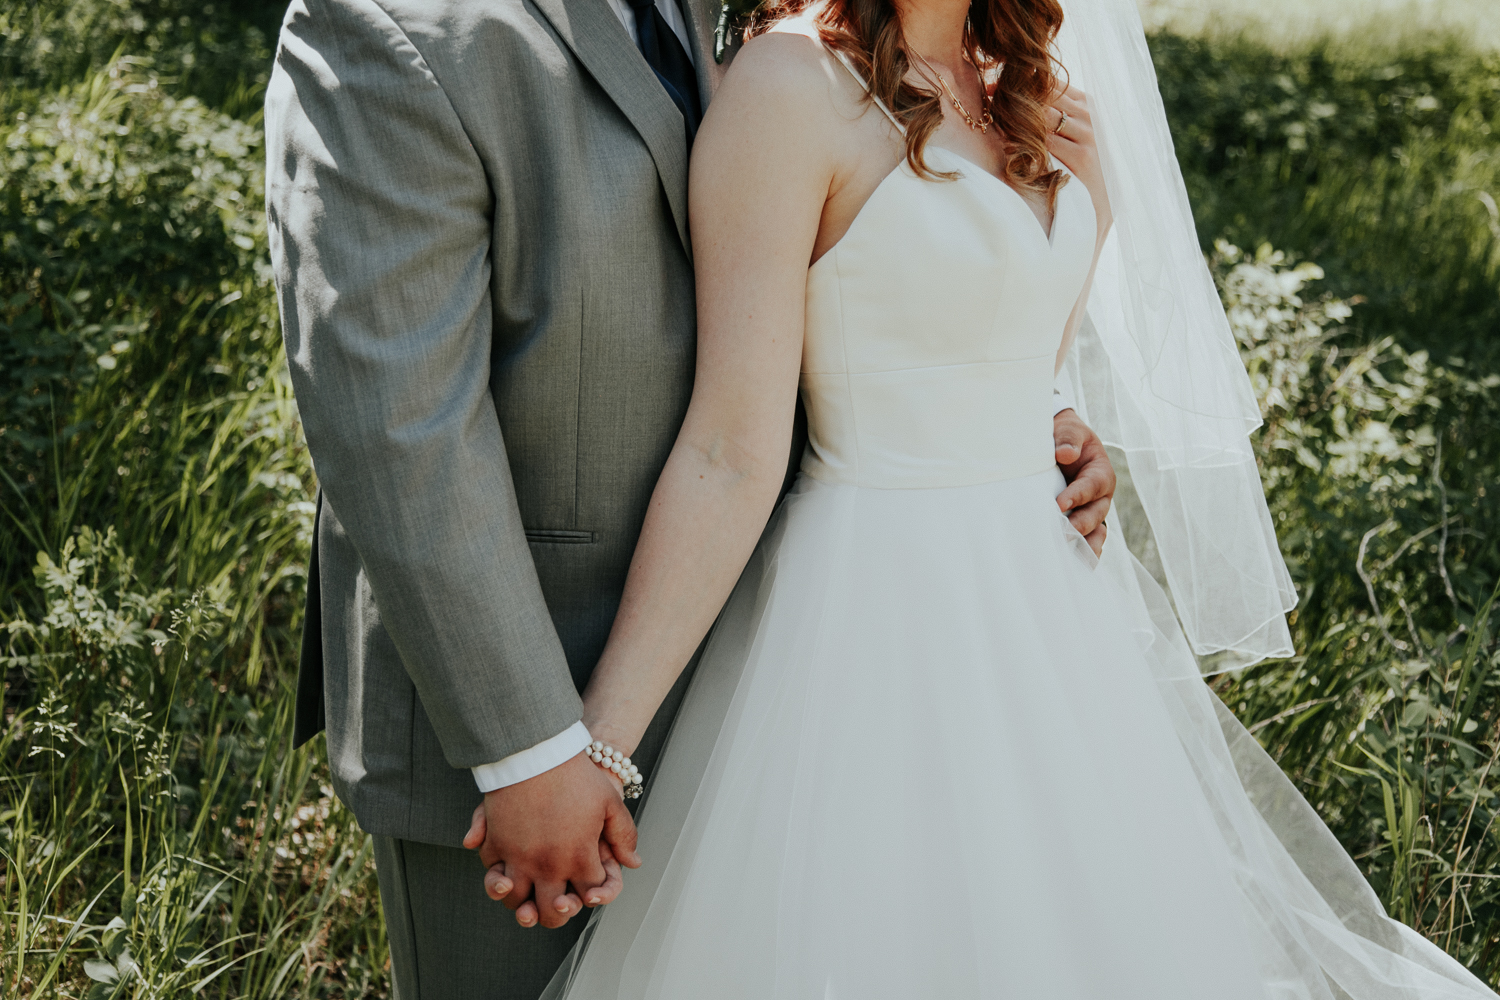 lethbridge-wedding-photographer-love-and-be-loved-photography-dan-tynnea-picture-image-photo-56.jpg